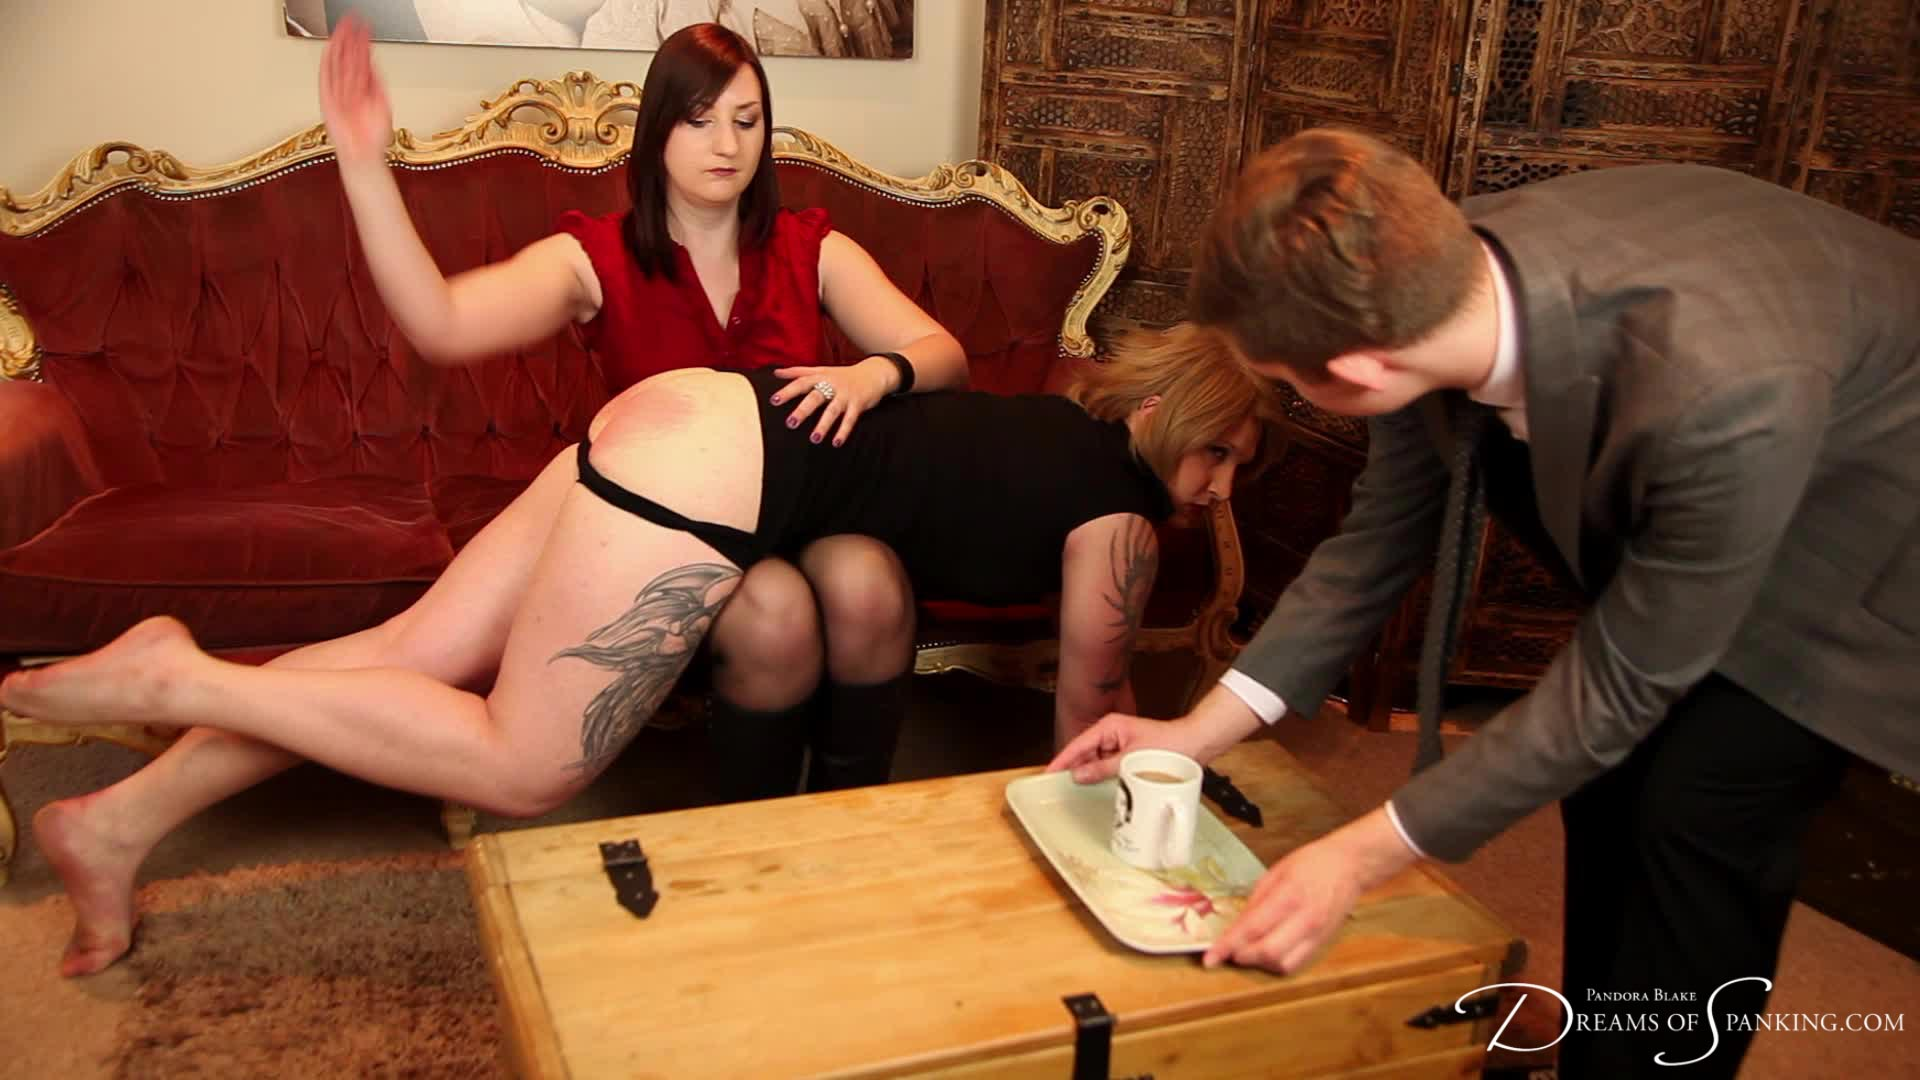 Houseboy: an award-winning tale of dominance, submission and jealousy starring Pandora Blake, Tai Crimson and Eliza Grey.